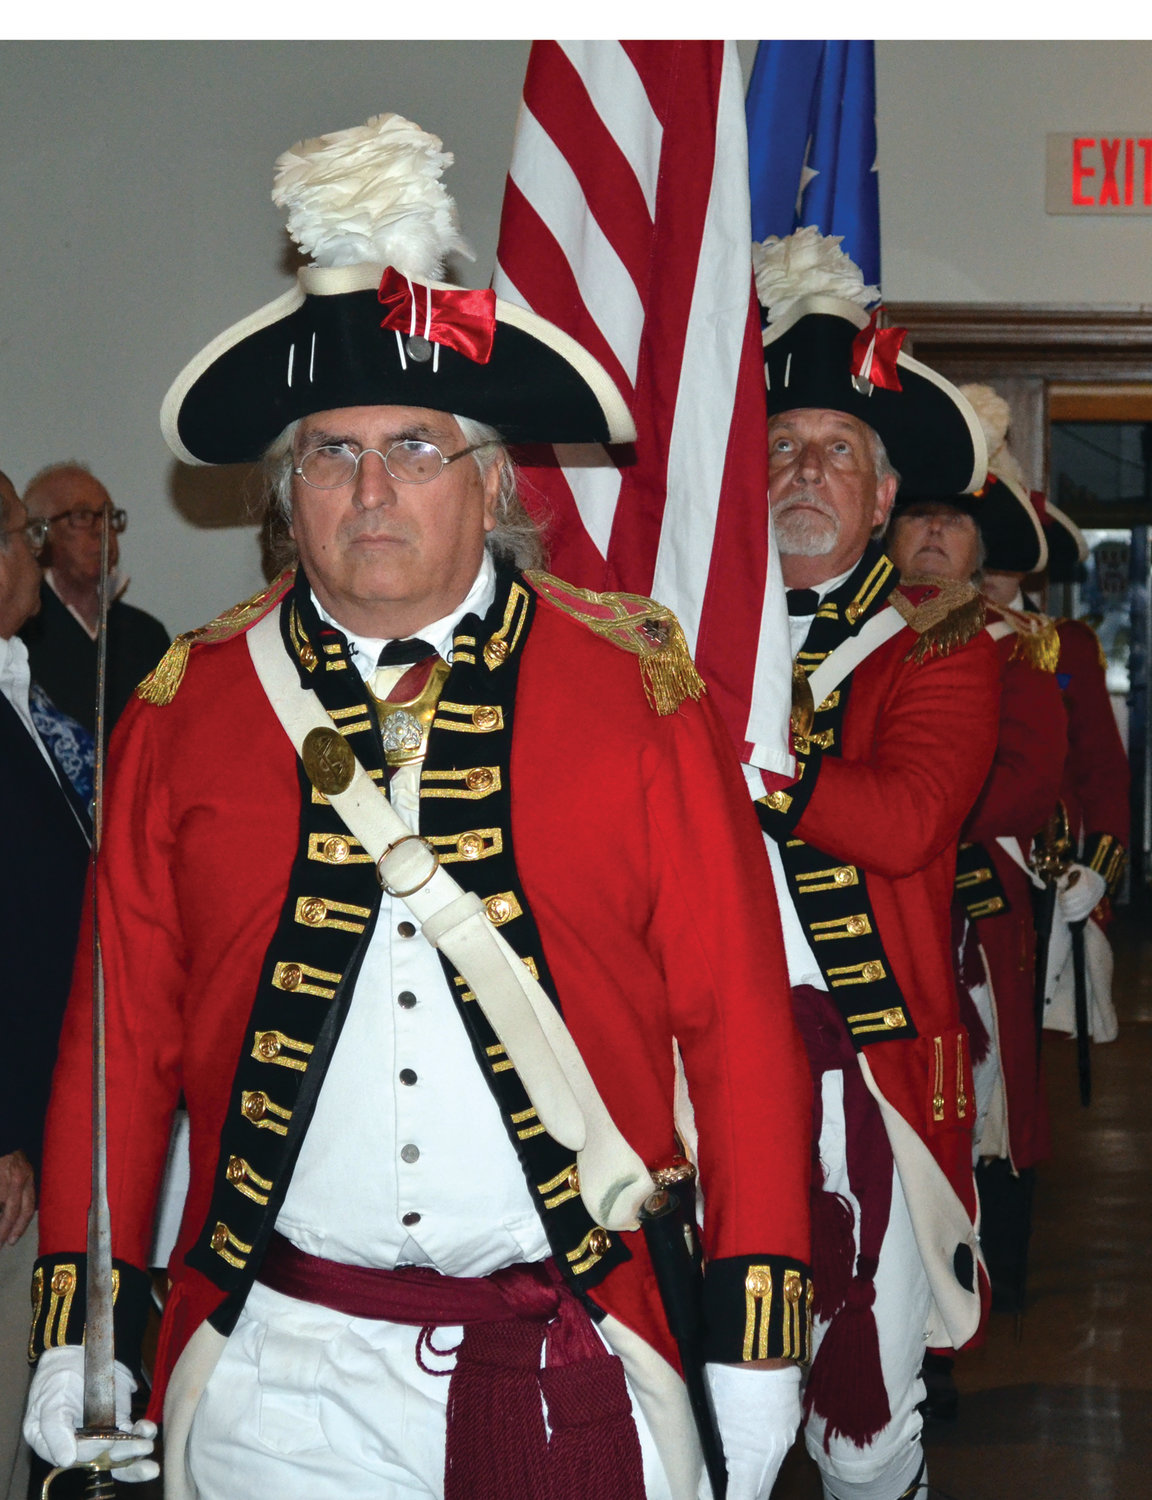 KICKING THINGS OFF: The Pawtuxet Rangers presented the colors at the start of the ceremony on Sept. 12.